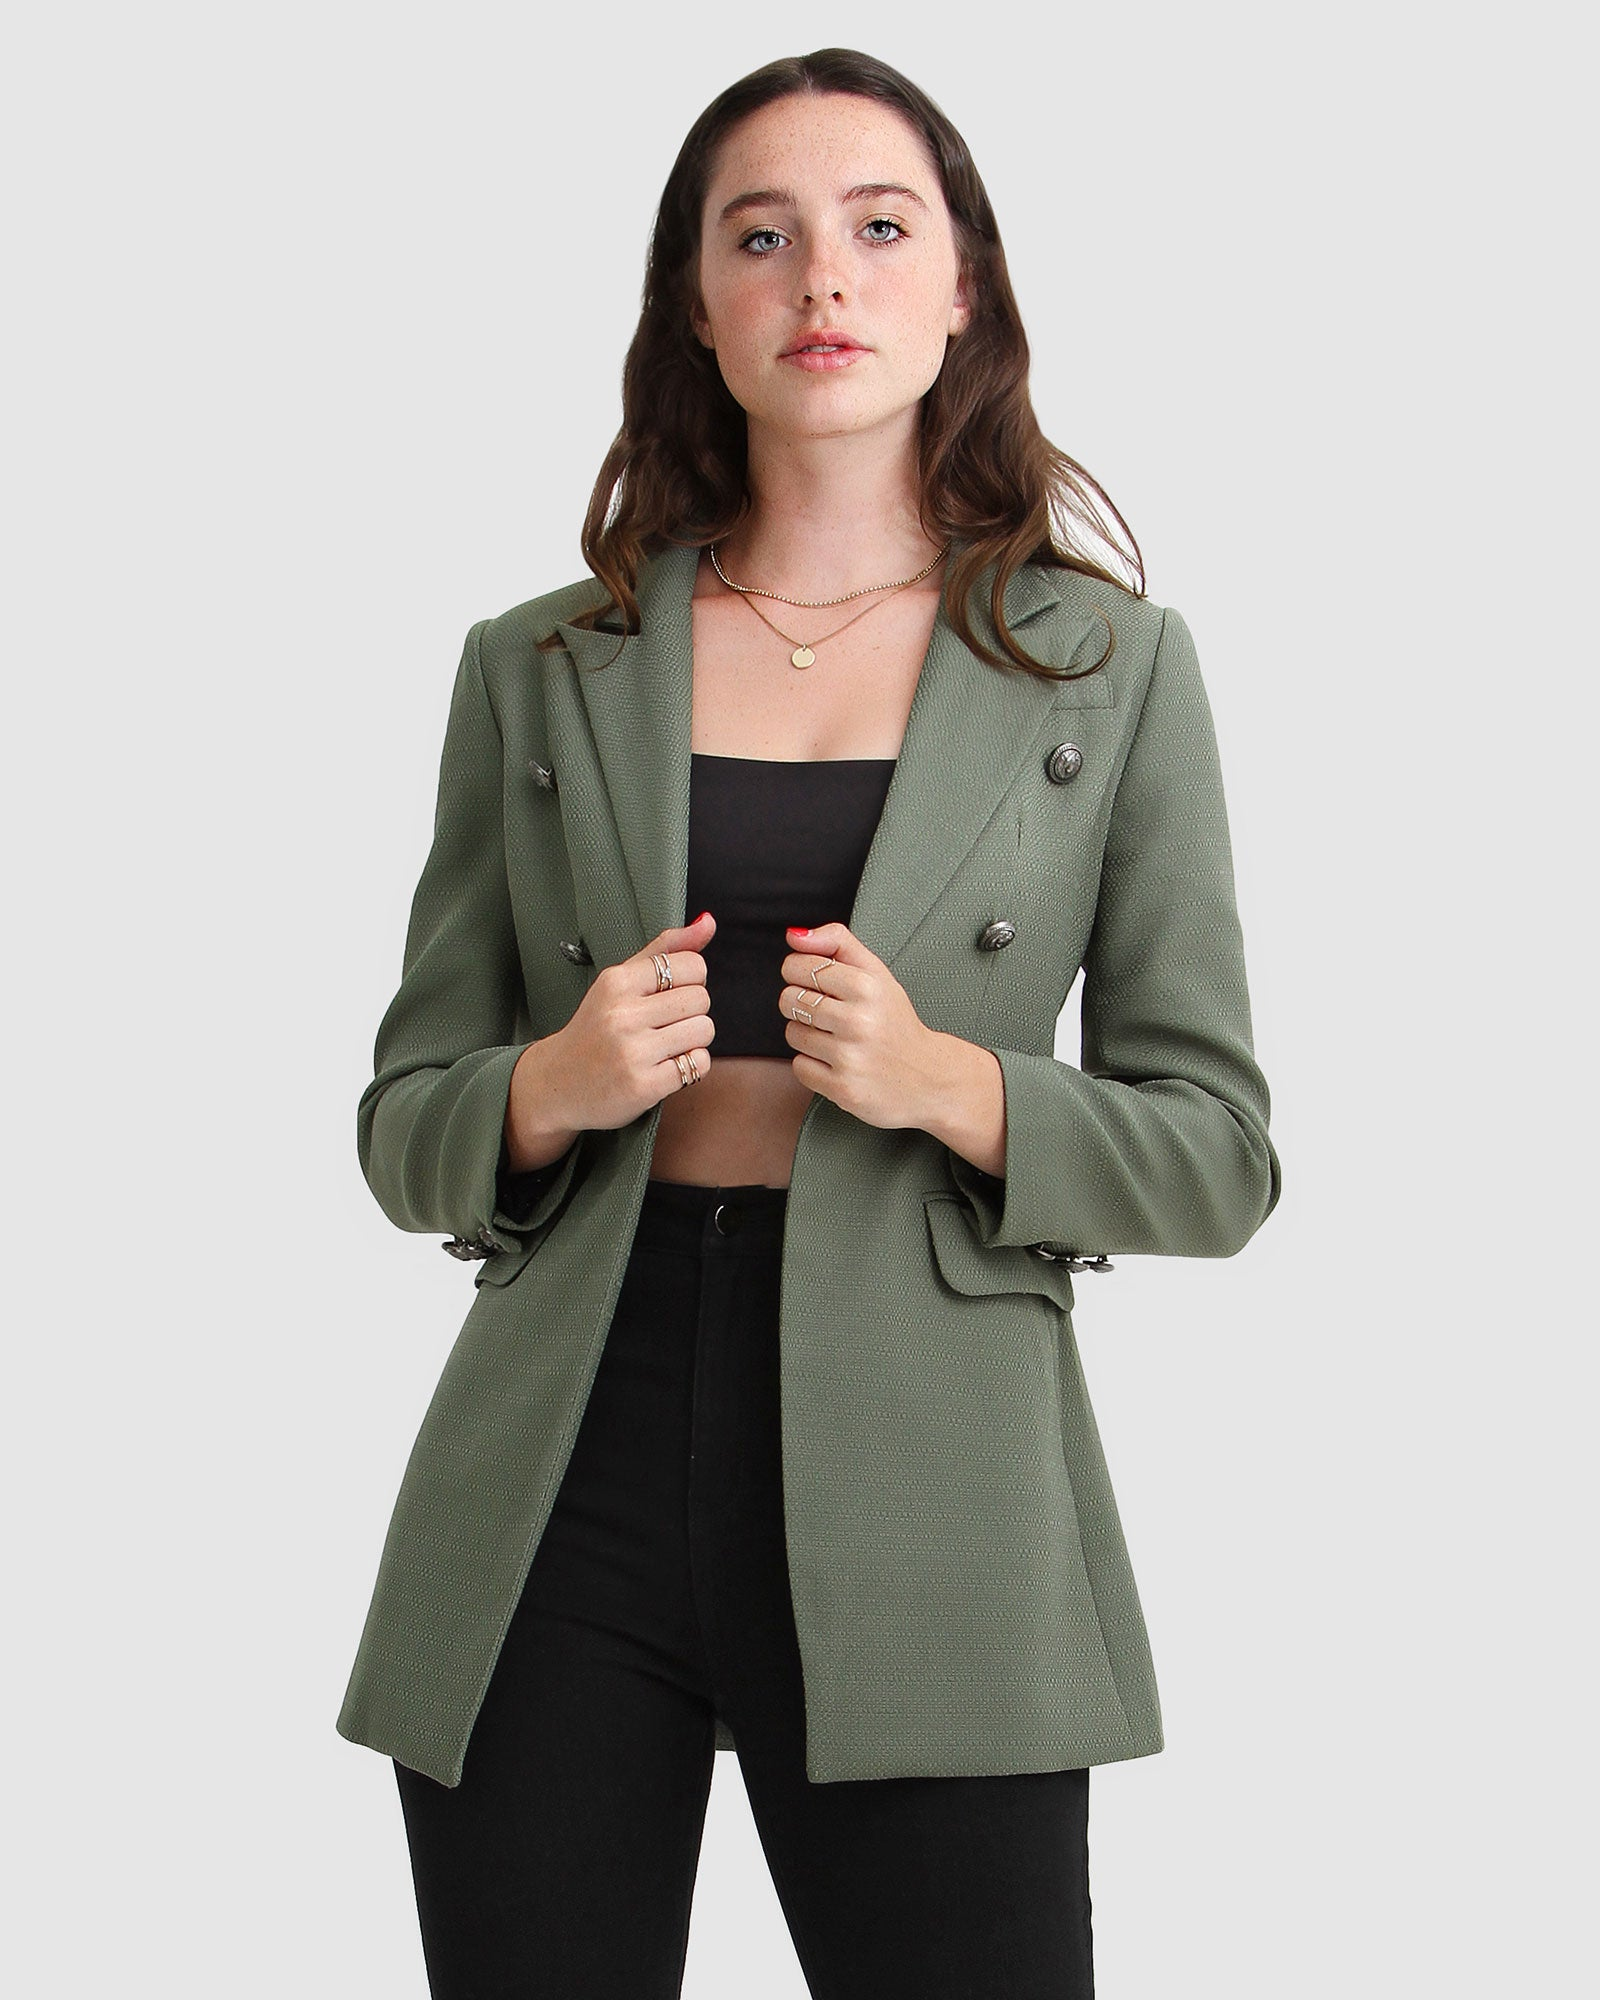 Princess Polly Textured Weave Blazer - Military